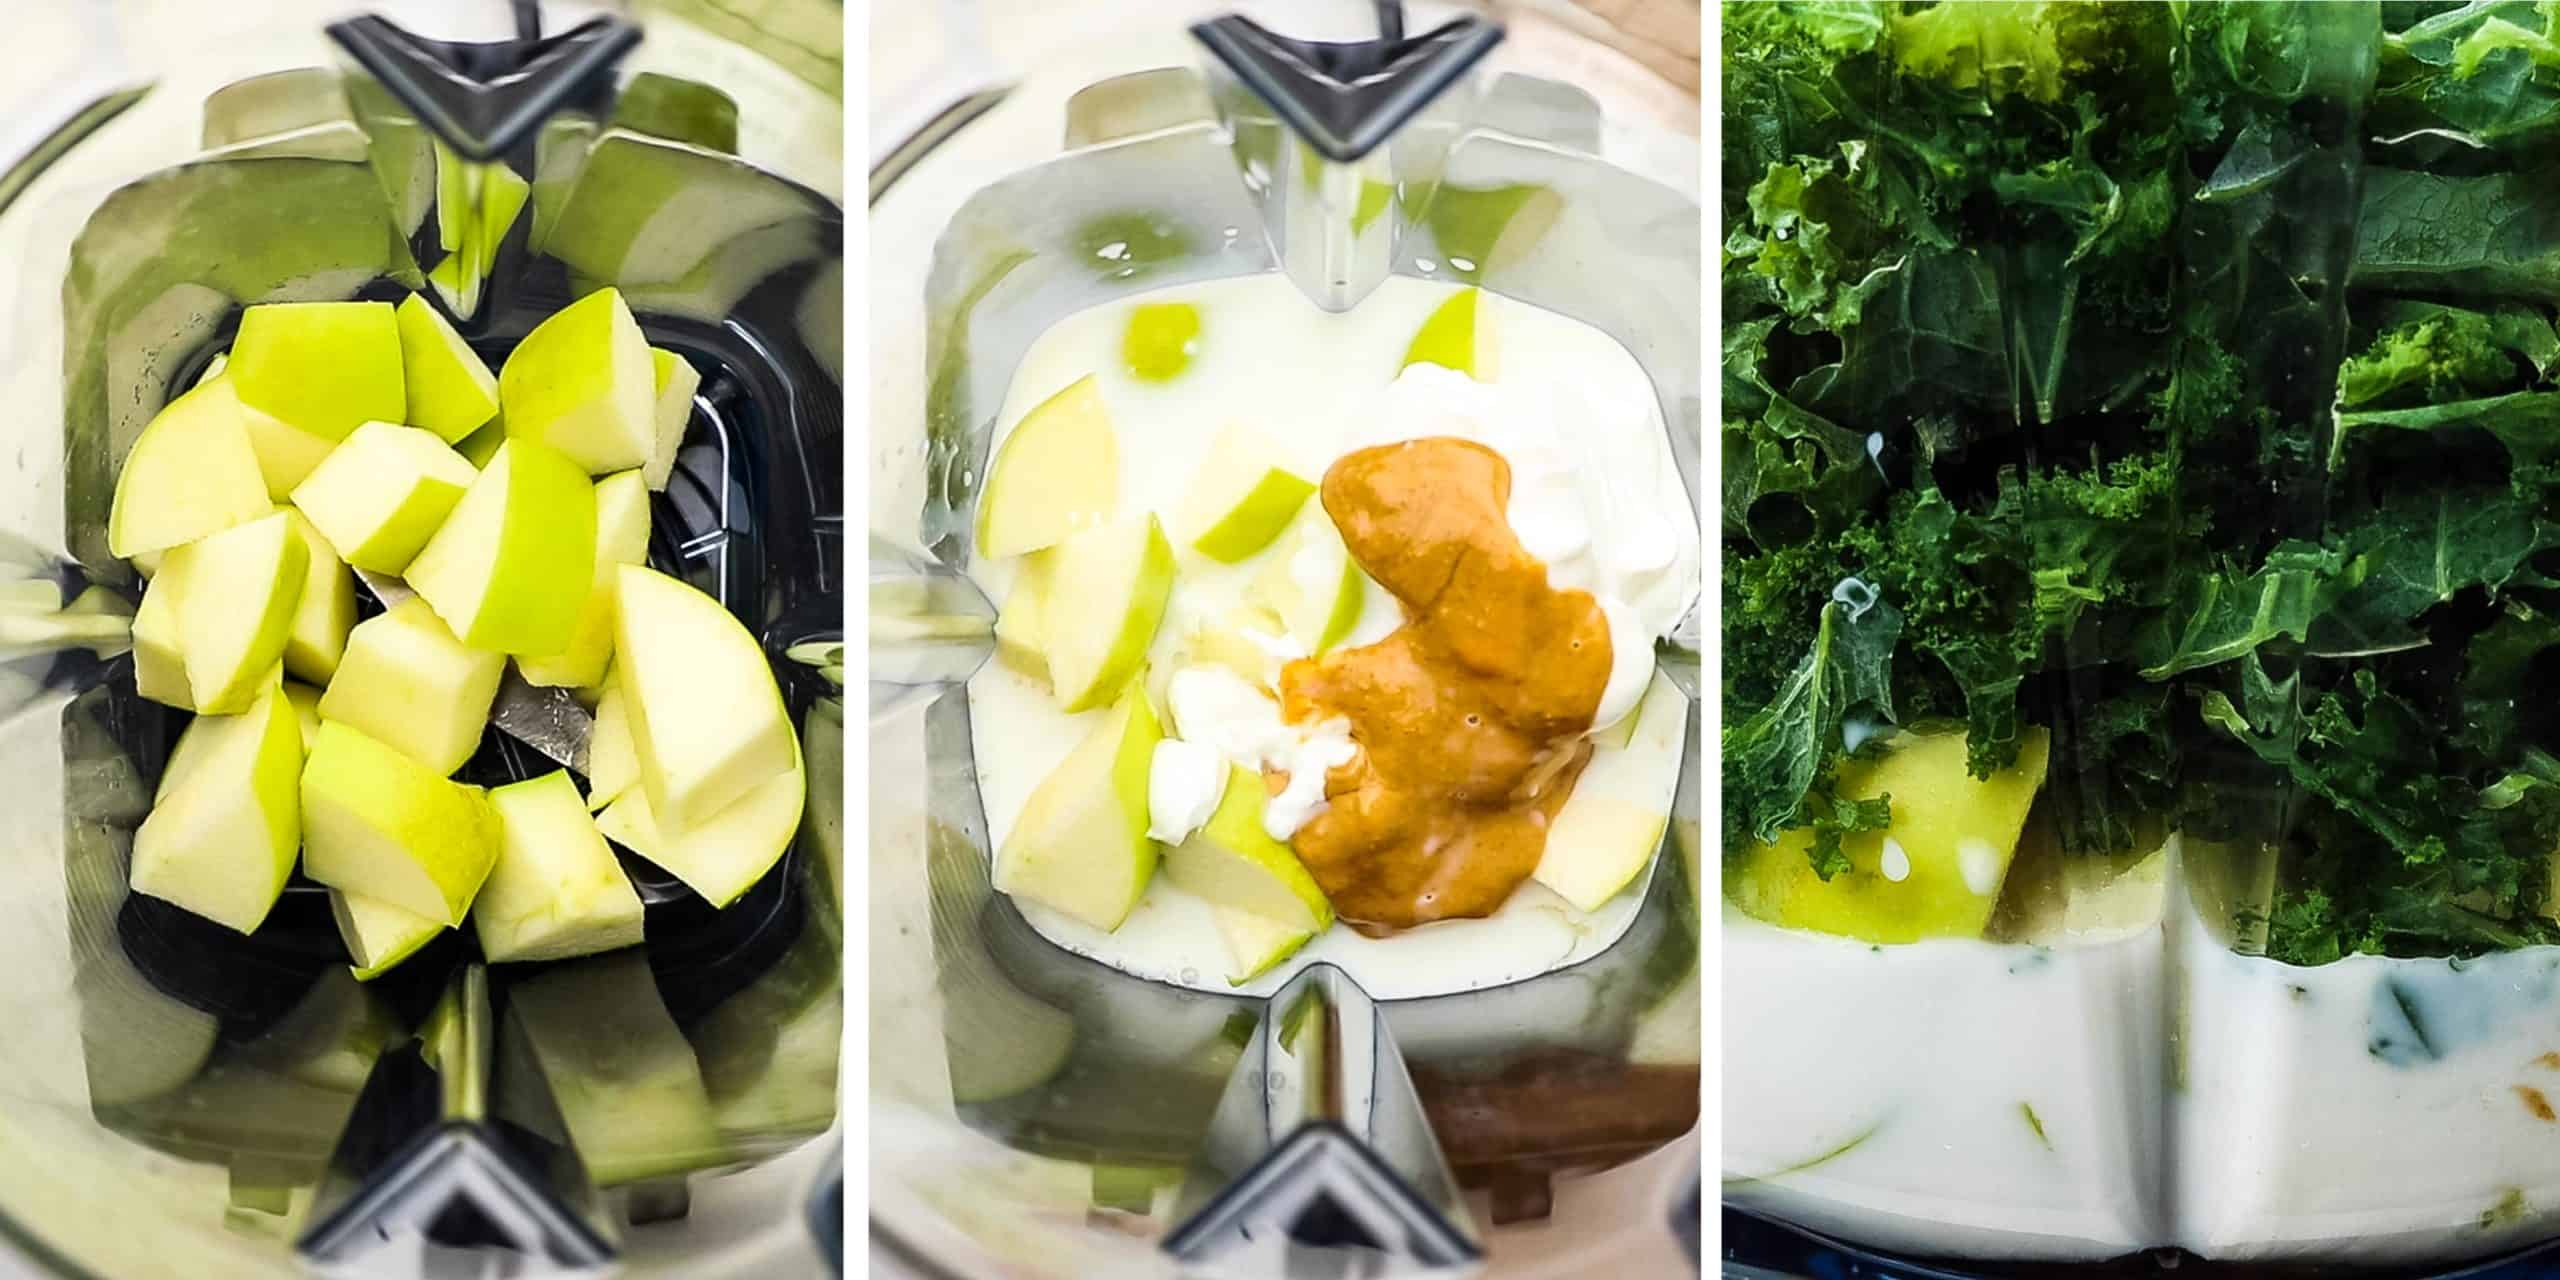 Ingredients for a kale apple smoothie being added to a blender.